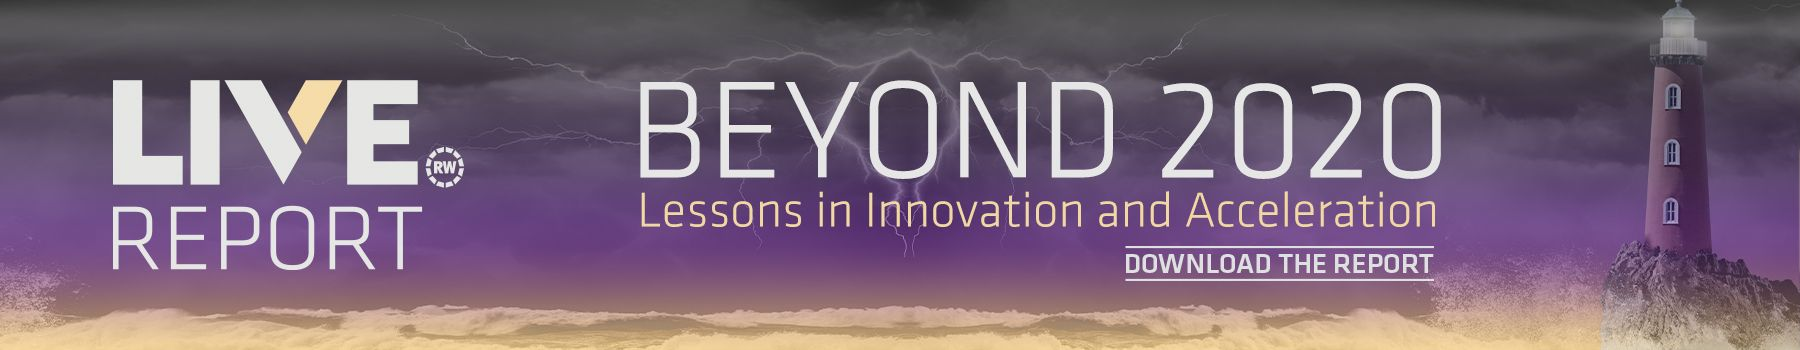 Beyond 2020: lessons in innovations and accelleration